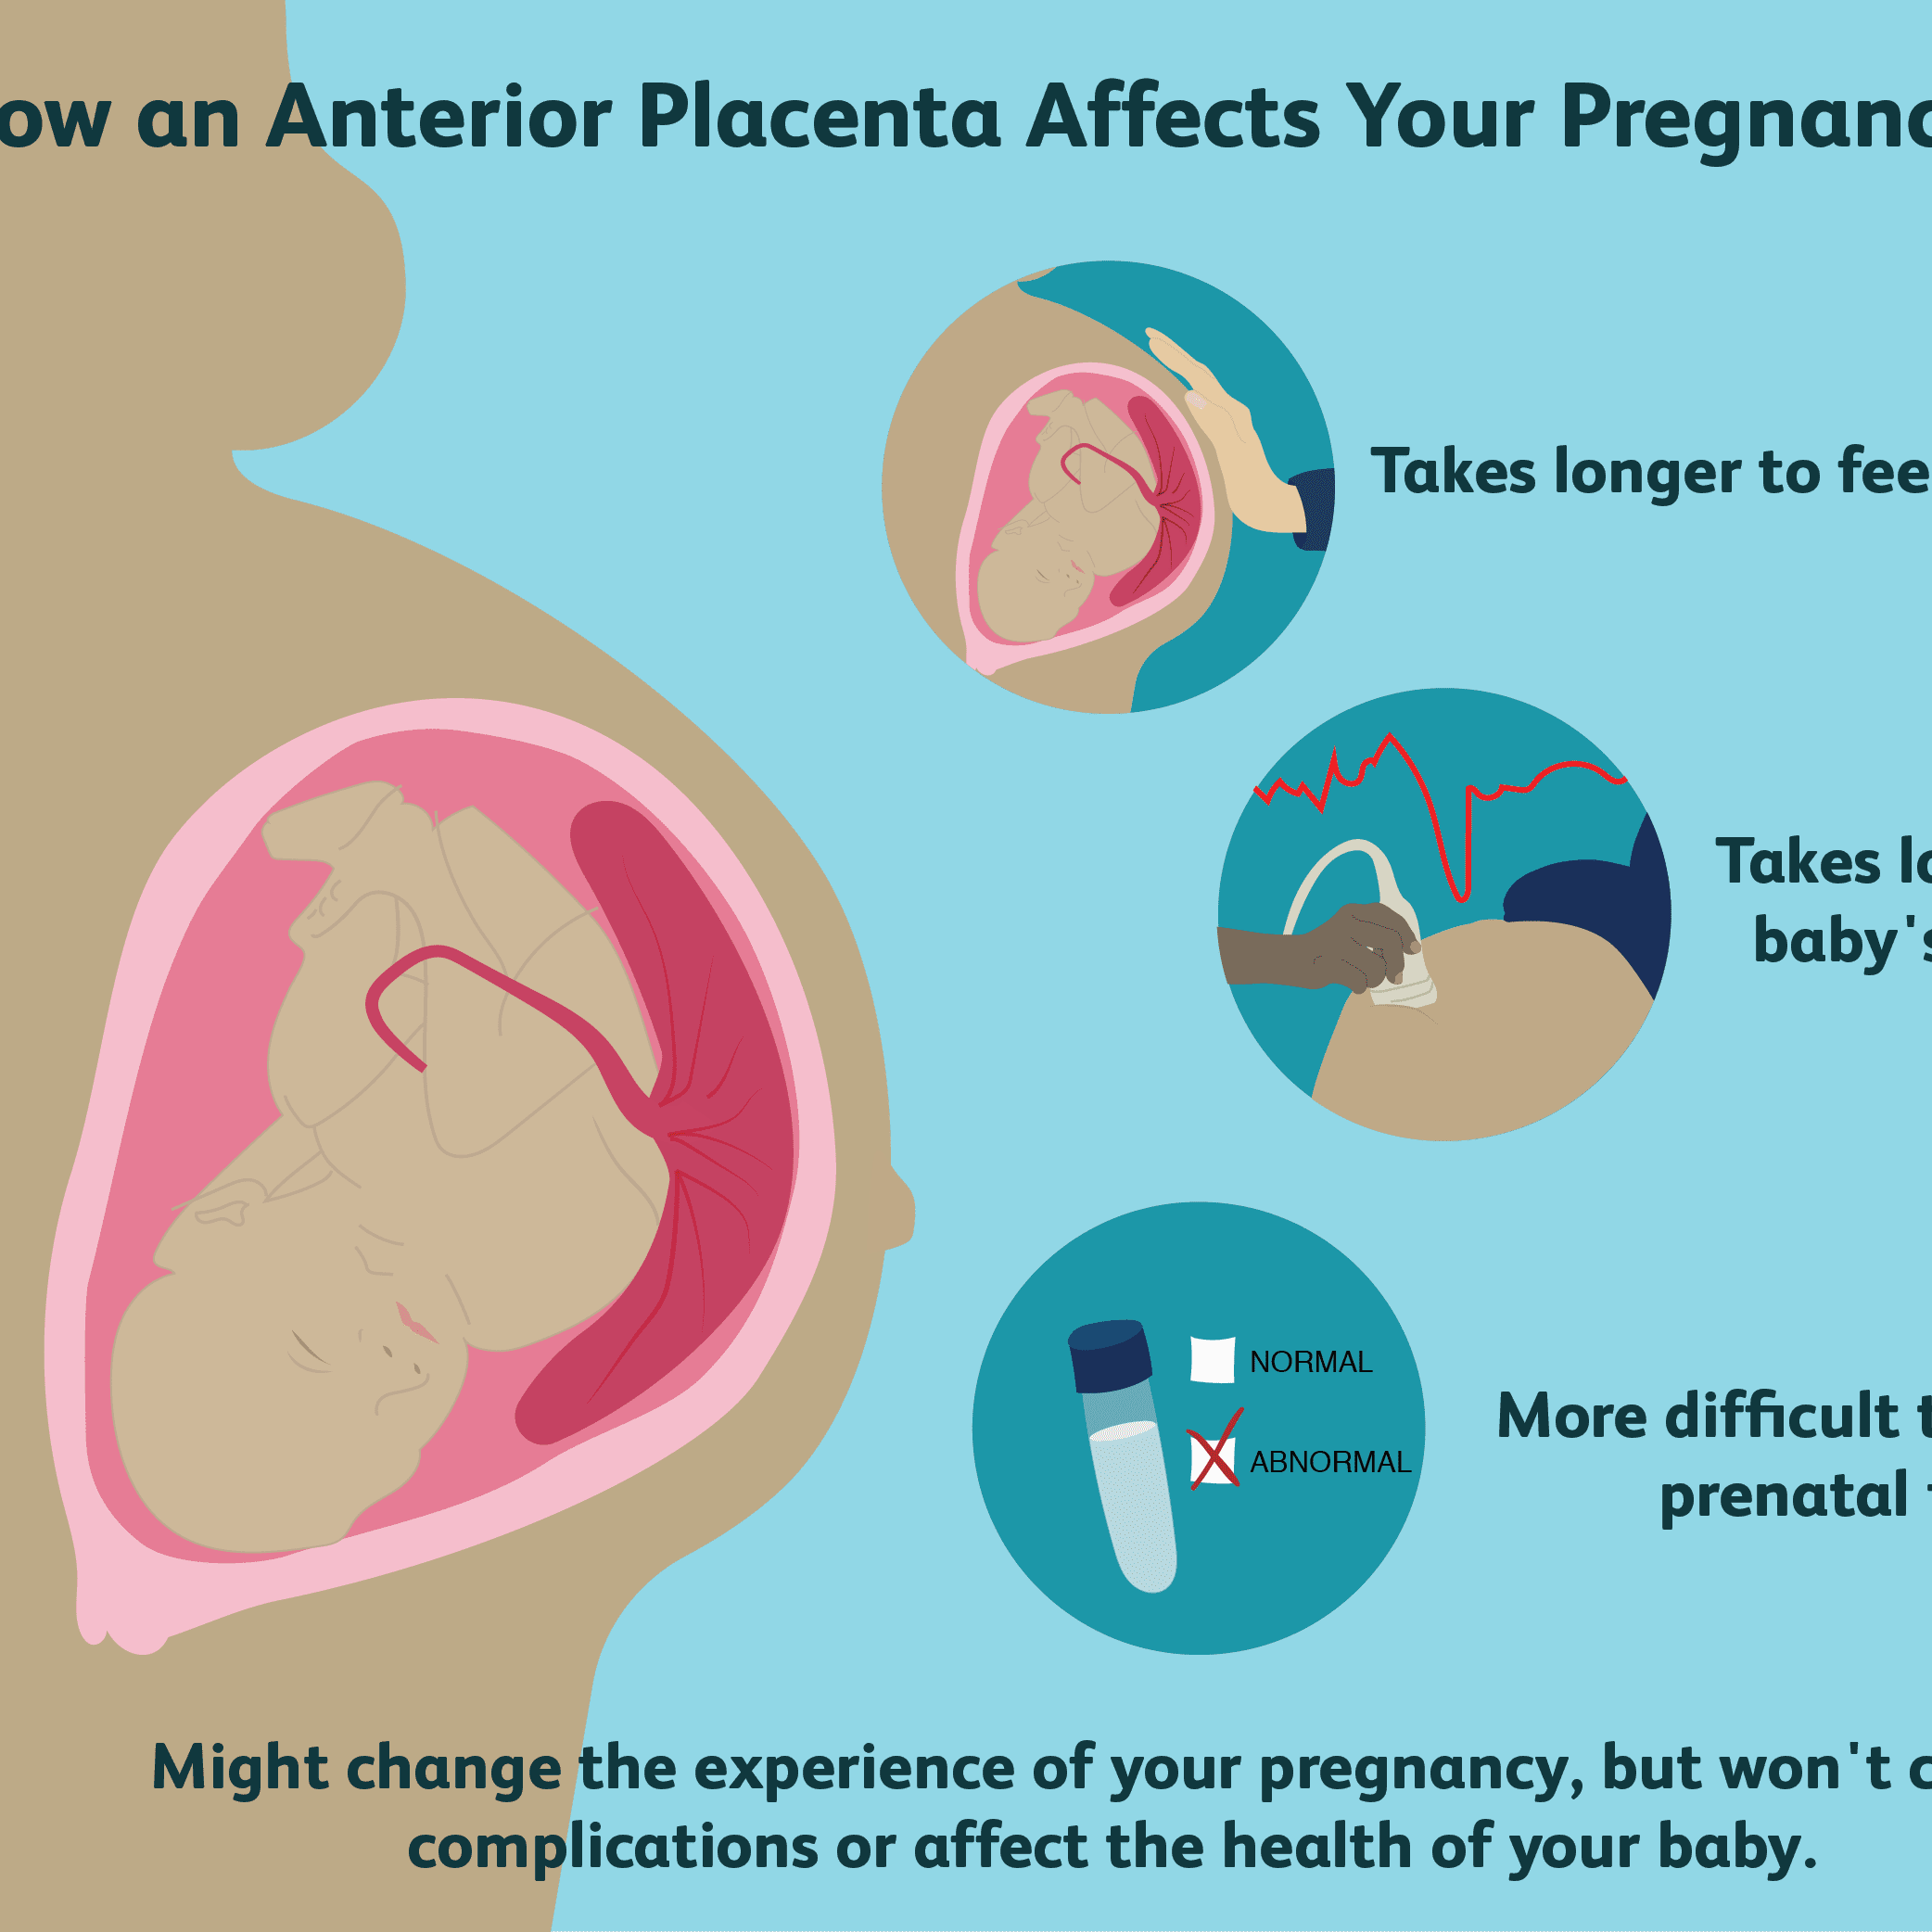 What It Means to Have an Anterior Placenta